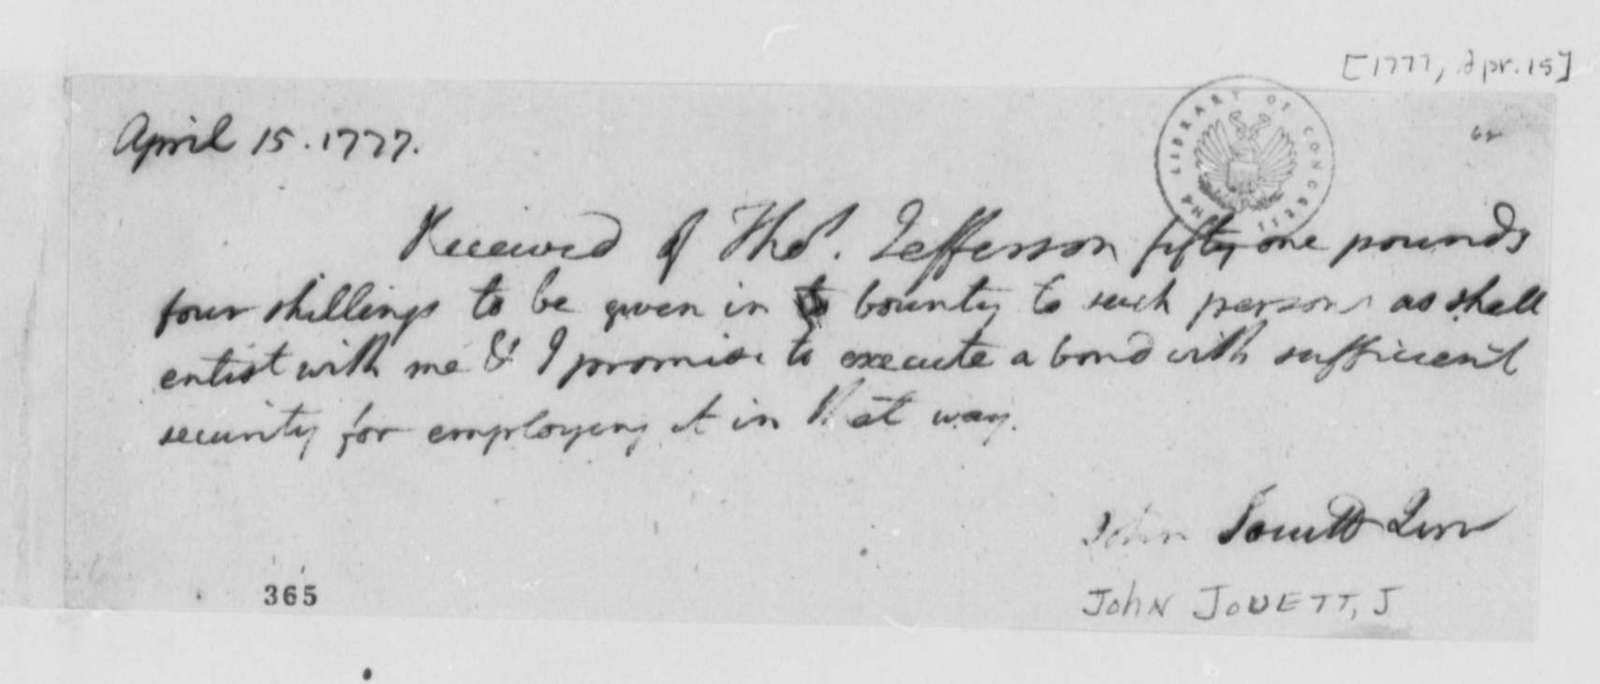 Thomas Jefferson to John Jouett Jr., April 15, 1777, Military Recruitment; Receipt for Bounty Money